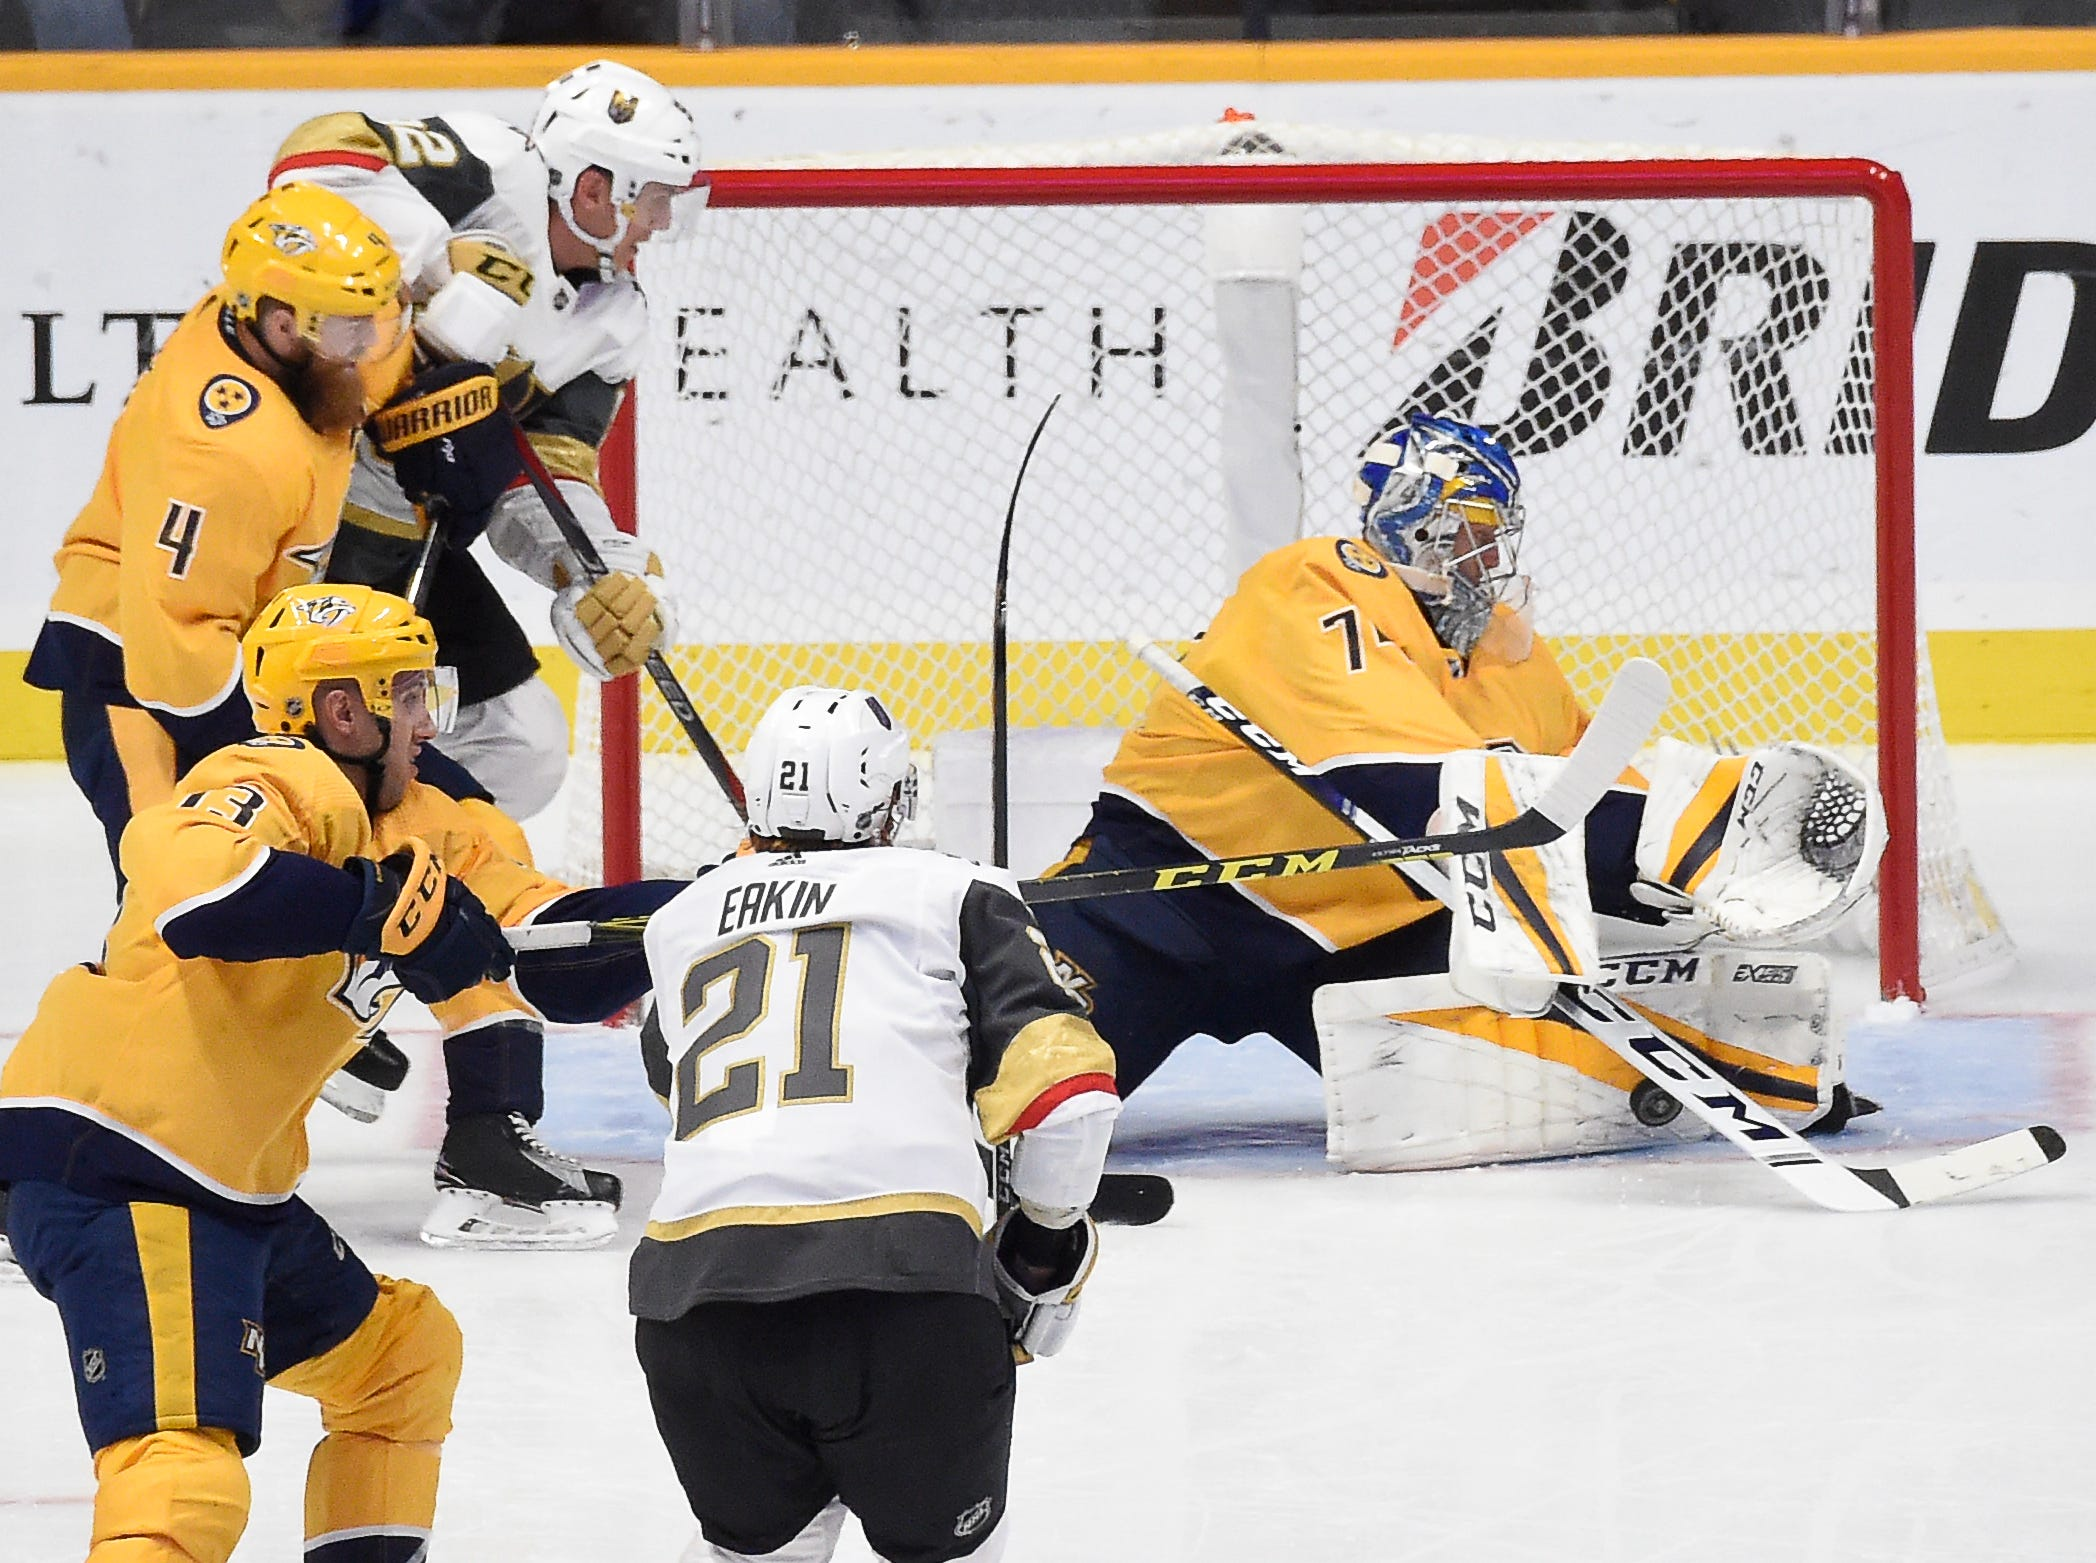 Predators goaltender Juuse Saros (74) stops a Golden Knights shot on goal during the first period at Bridgestone Arena Tuesday, Oct. 30, 2018, in Nashville, Tenn.